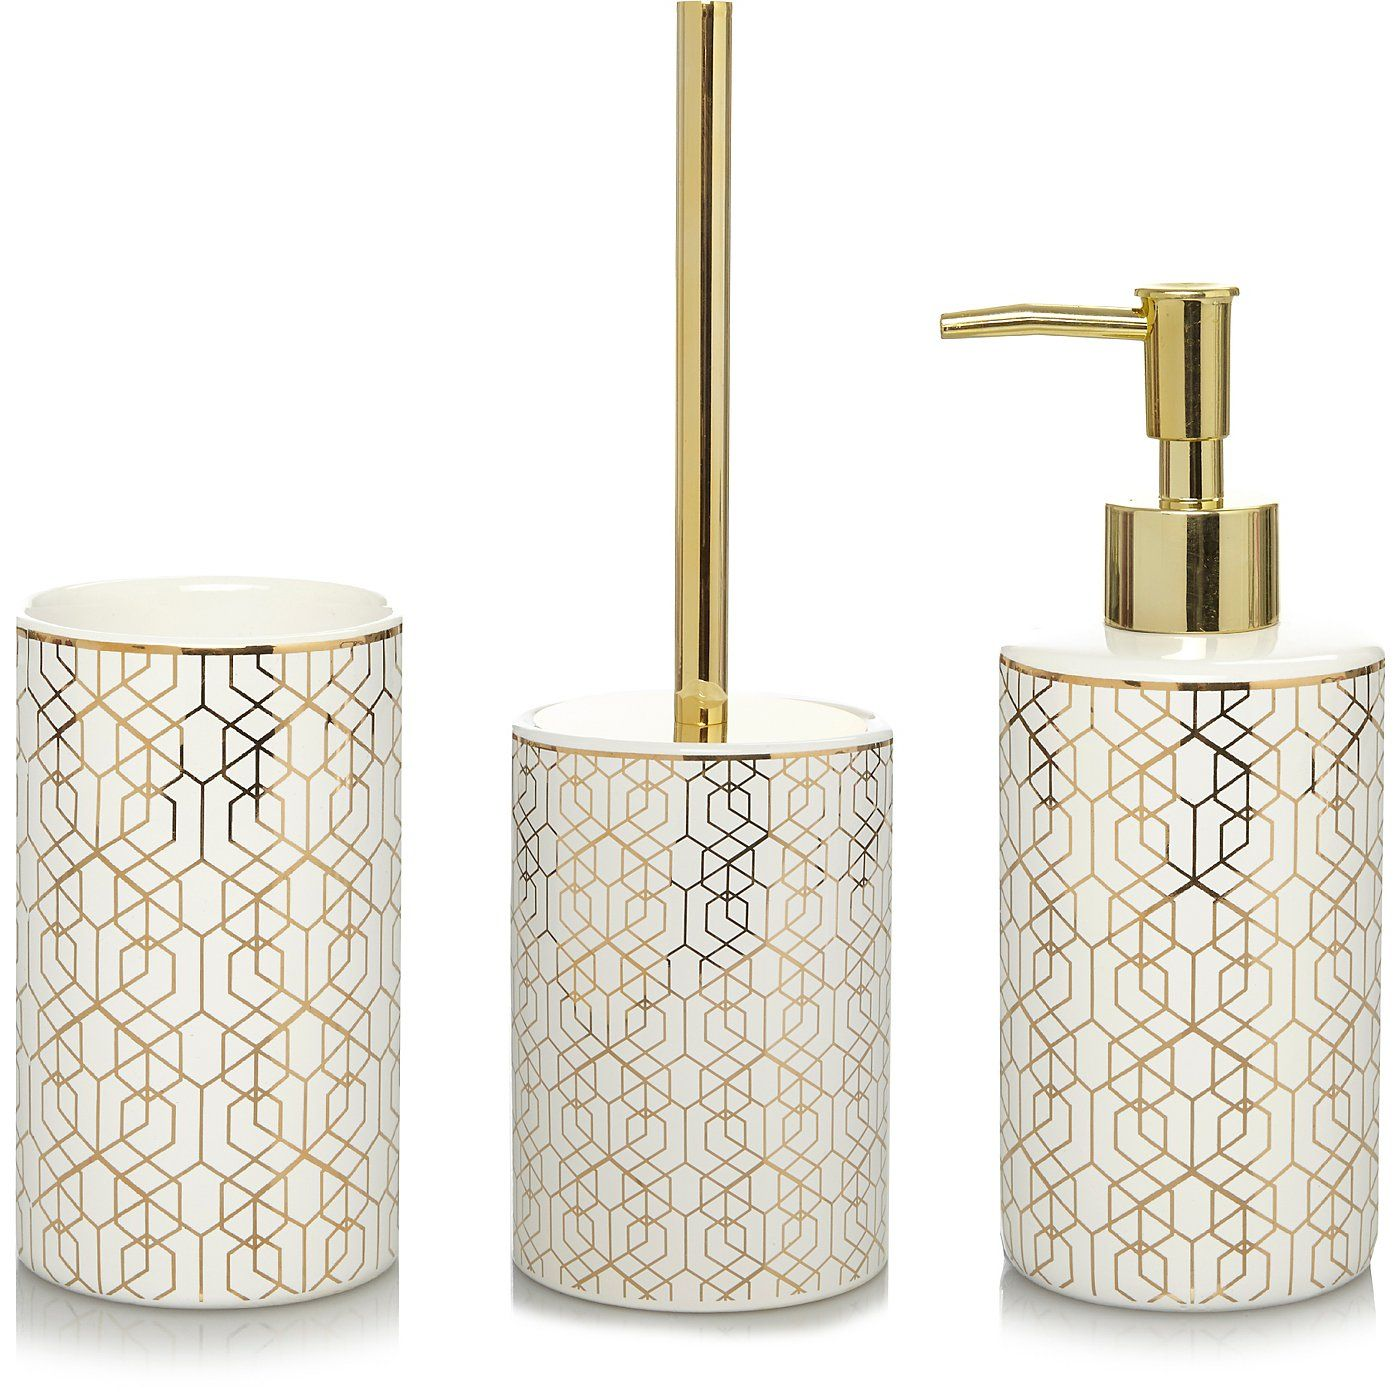 Buy Gold Geometric Bathroom Accessories Range from our Bathroom